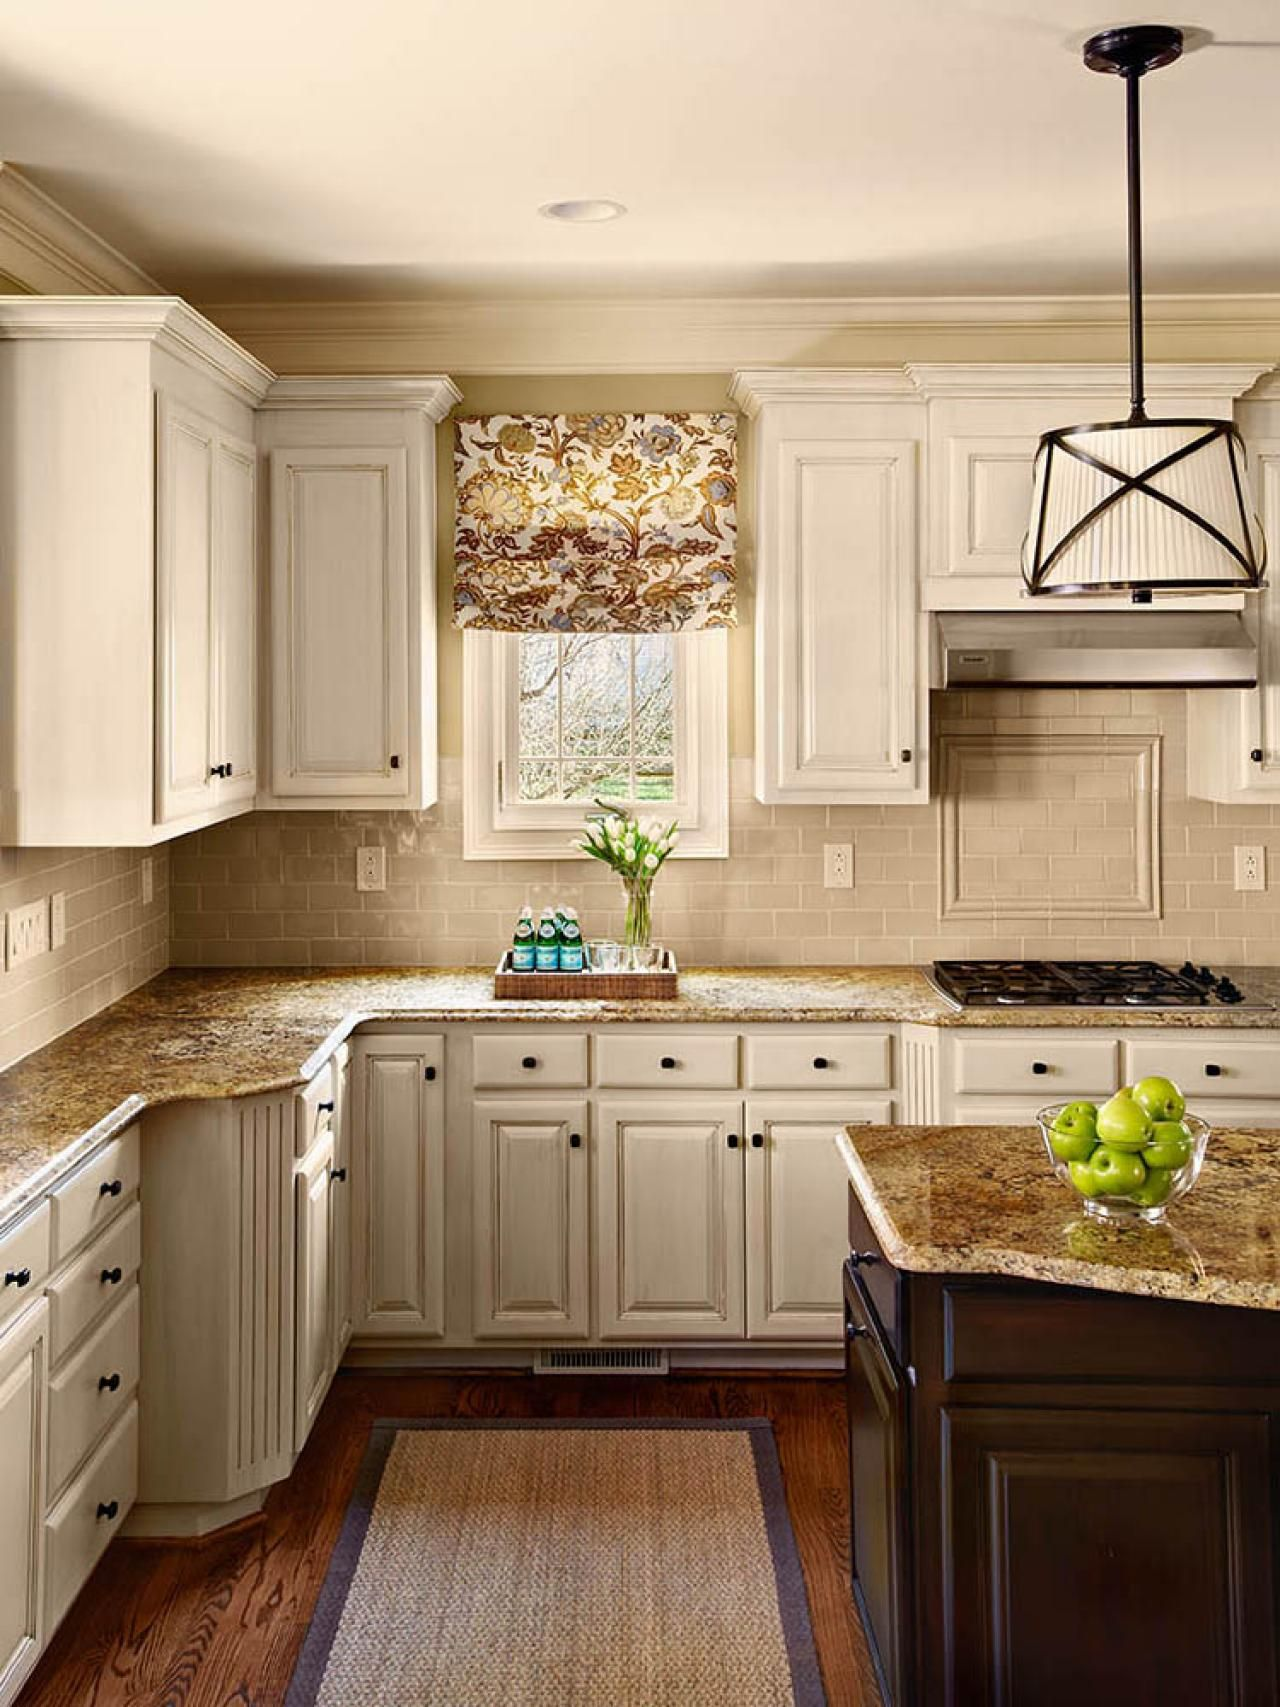 Resurfacing Kitchen Cabinets: Pictures & Ideas From ...